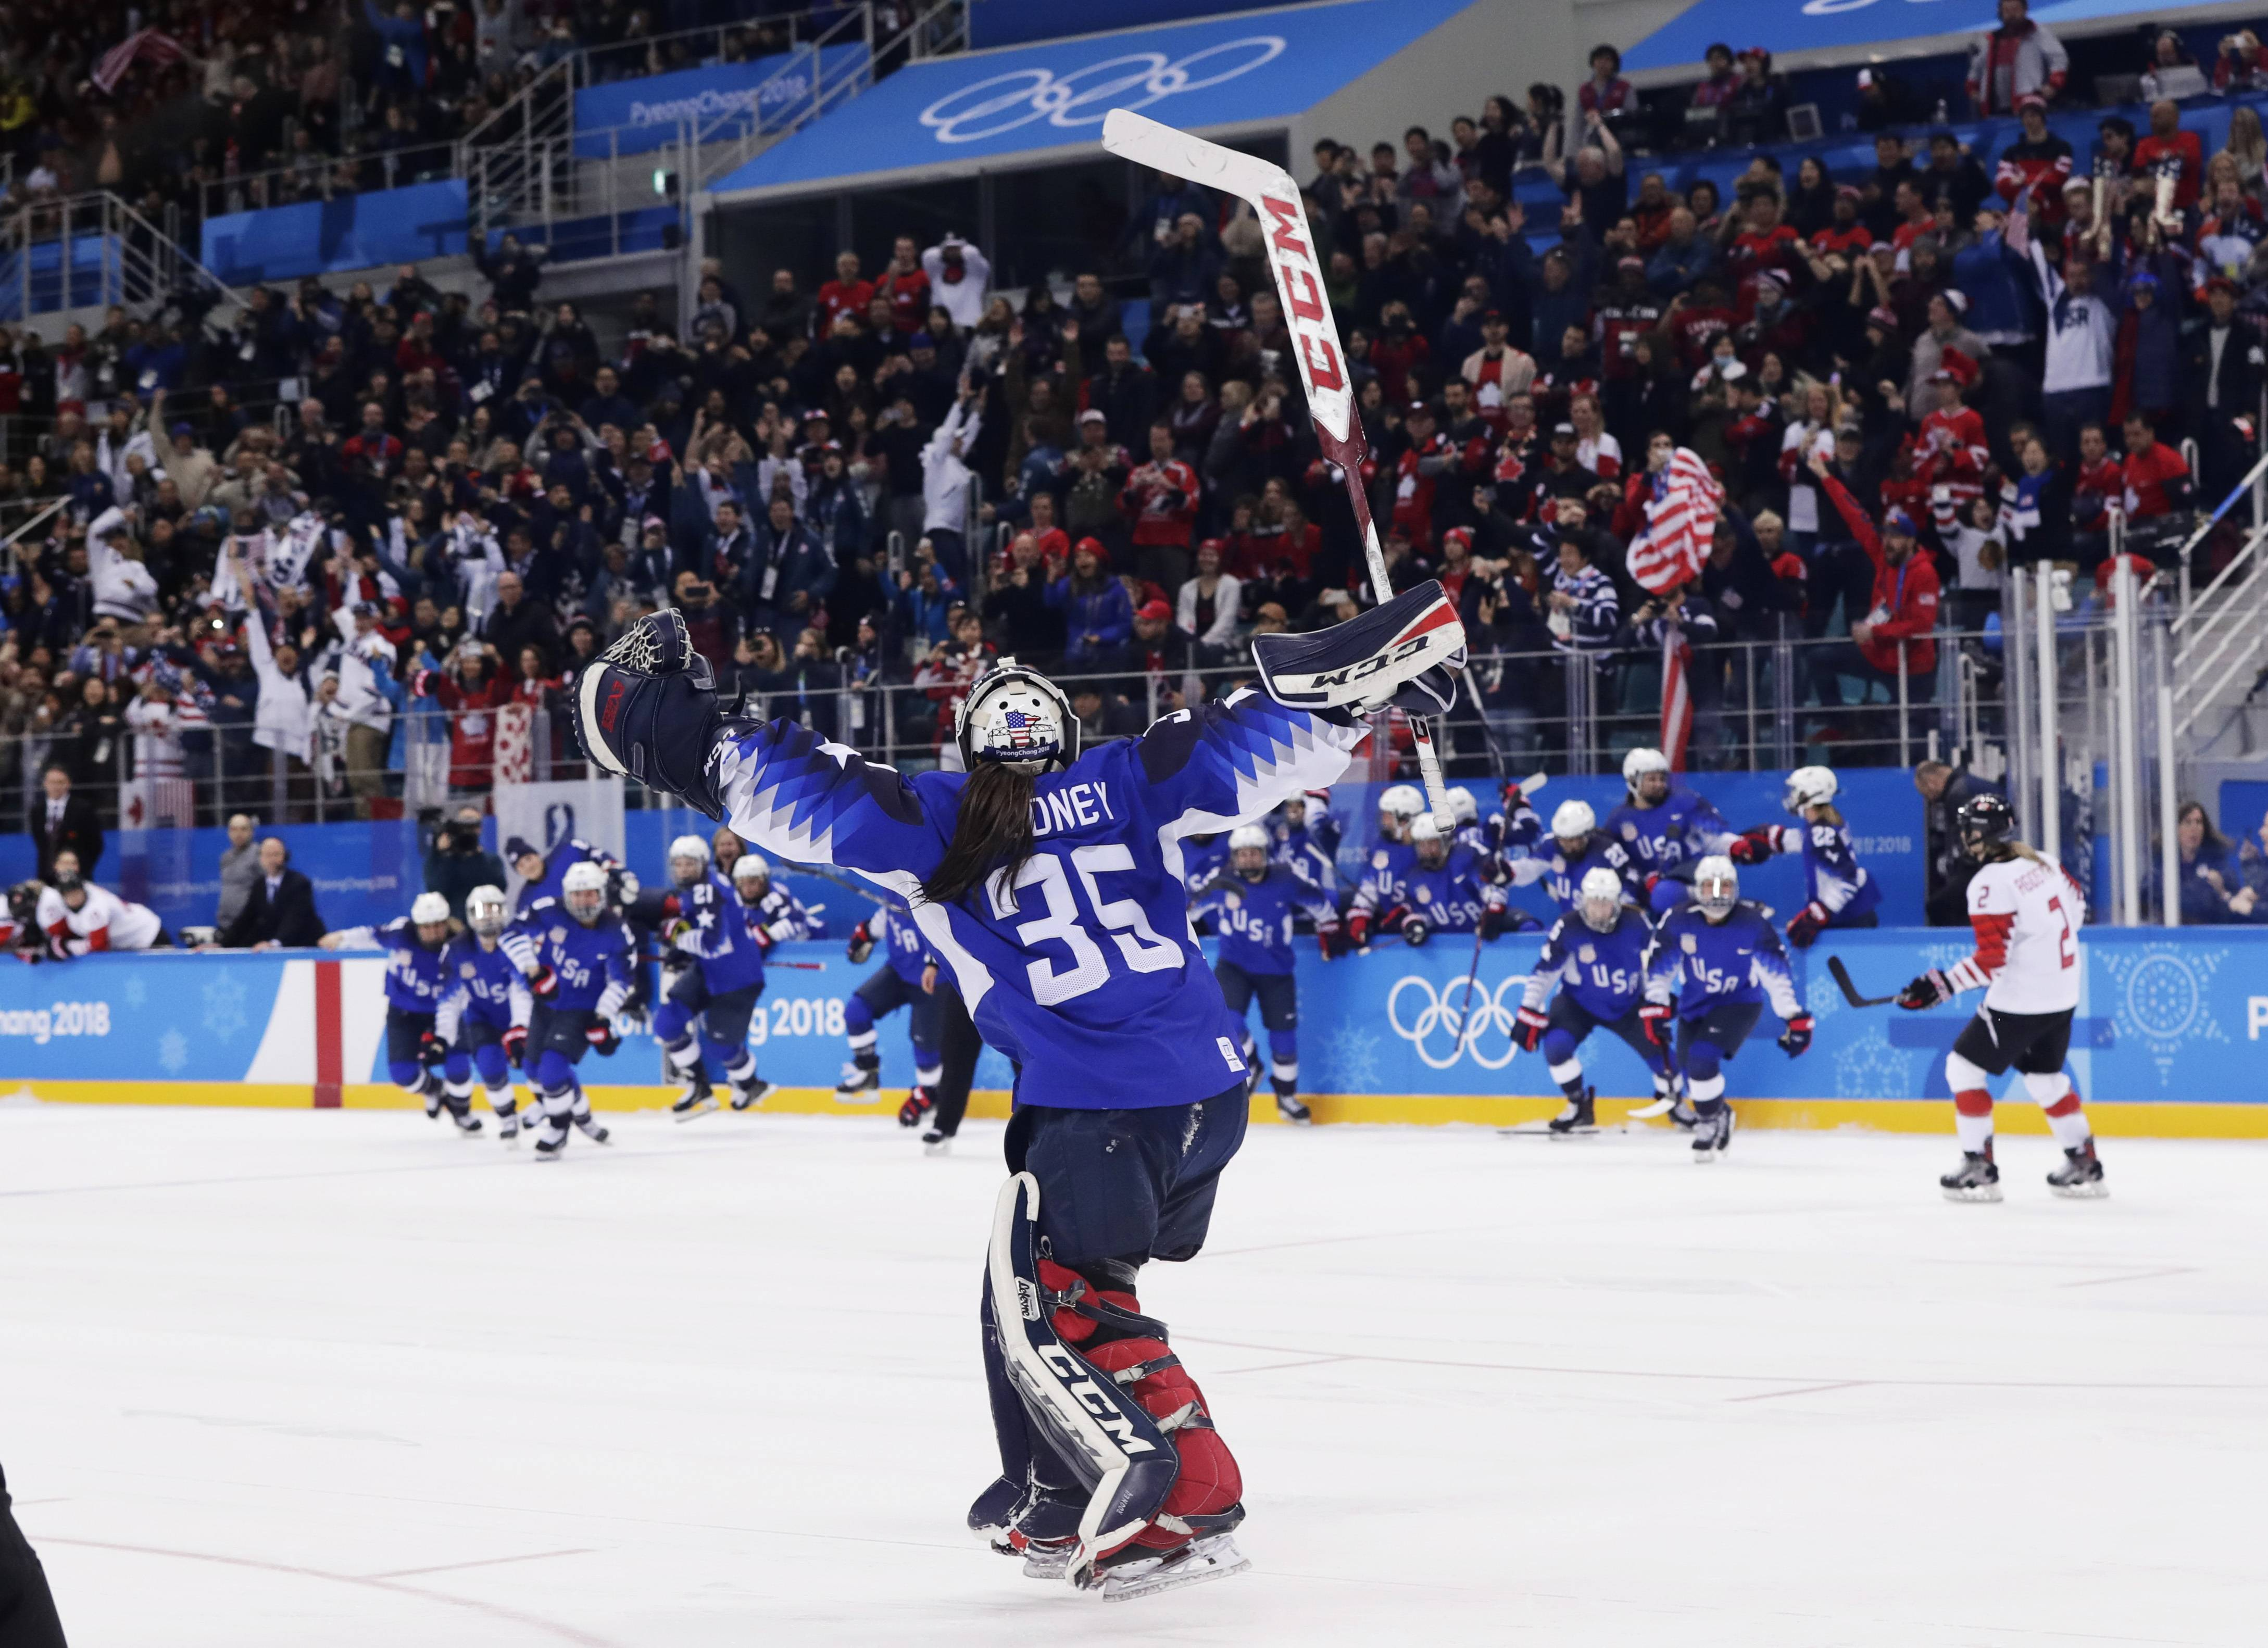 The United States players celebrate winning after the women's gold medal hockey game against Canada at the 2018 Winter Olympics in Gangneung, South Korea, Thursday, Feb. 22, 2018. (AP Photo/Frank Franklin II)